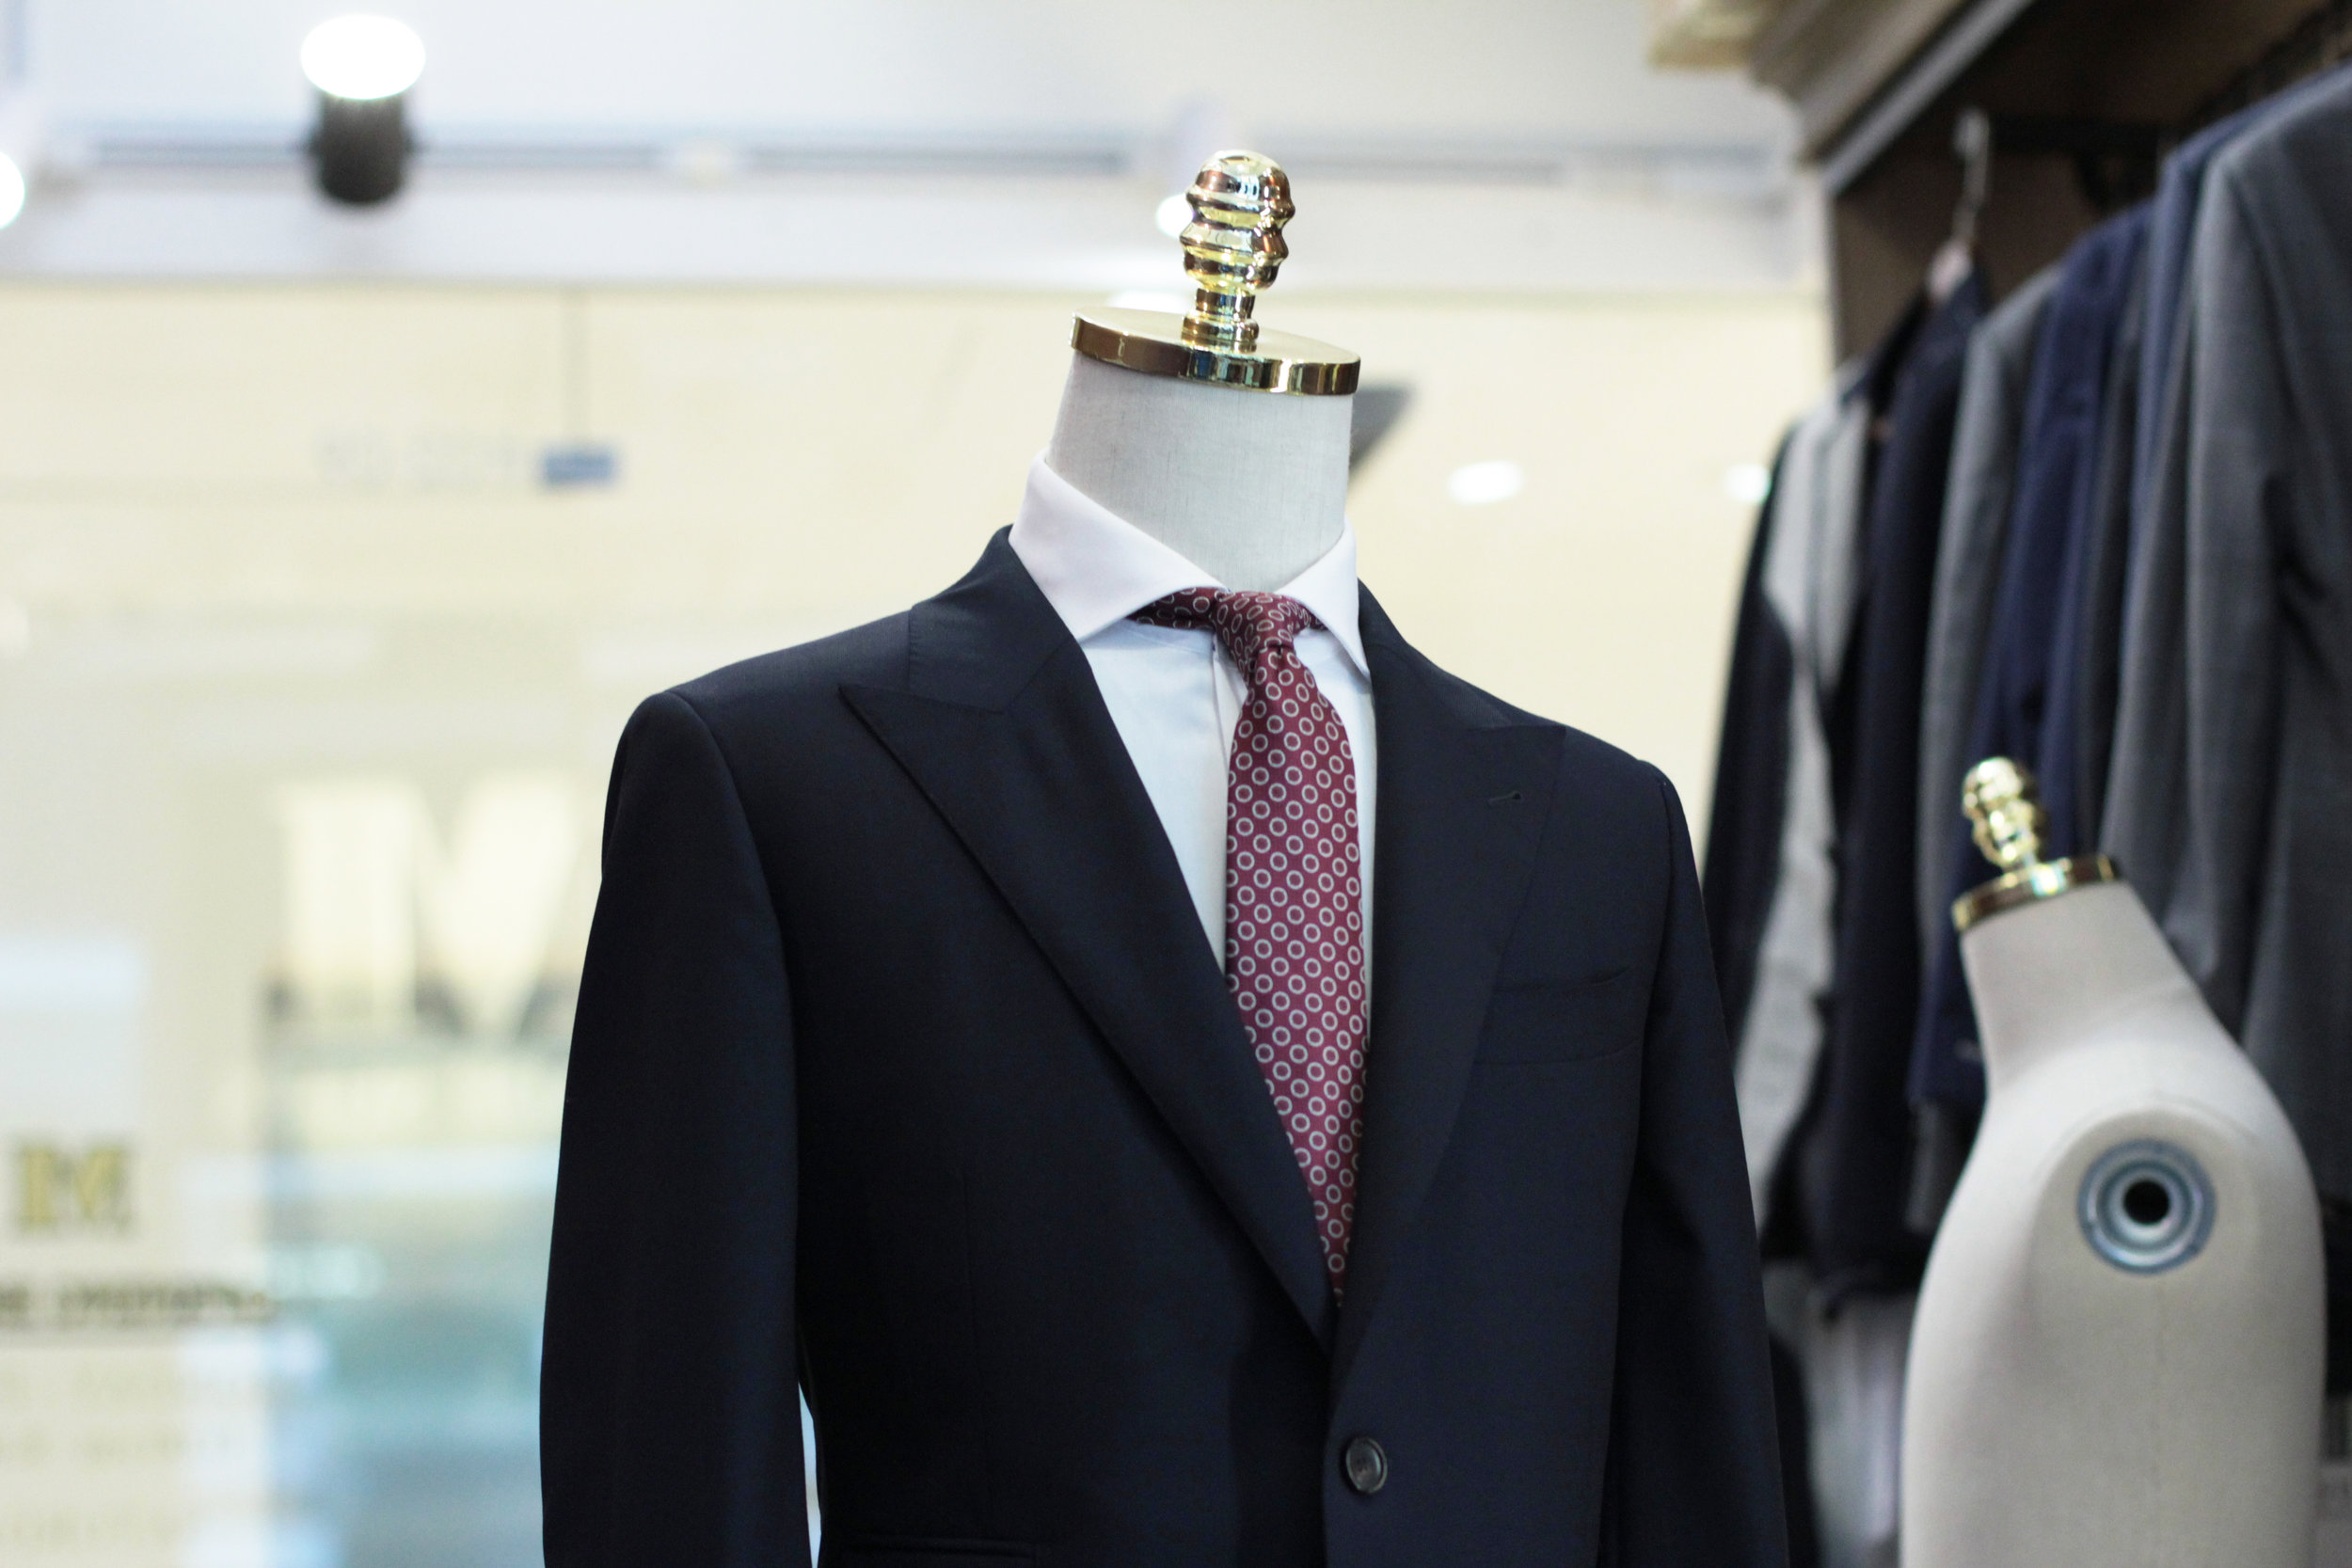 Mr Tey Tailor made suits stylbiella custom made to measure bespoke singapore suits side.JPG